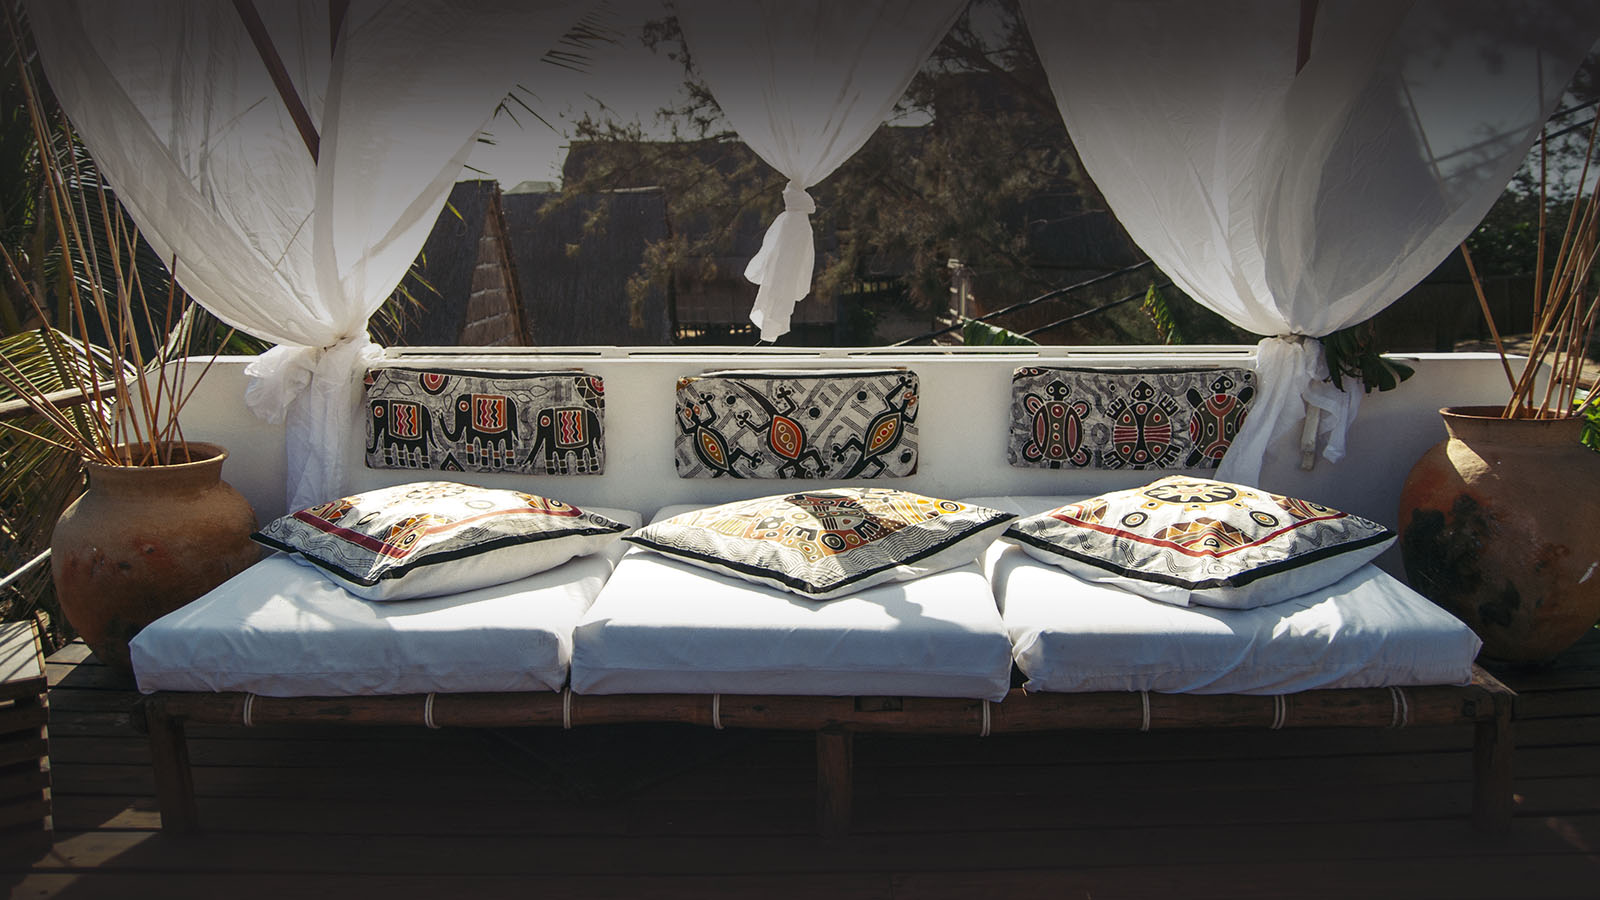 baia sonambula guest-house-tofo-mozambique-lodges-zambia-in-style-diving-enthusiast-bed